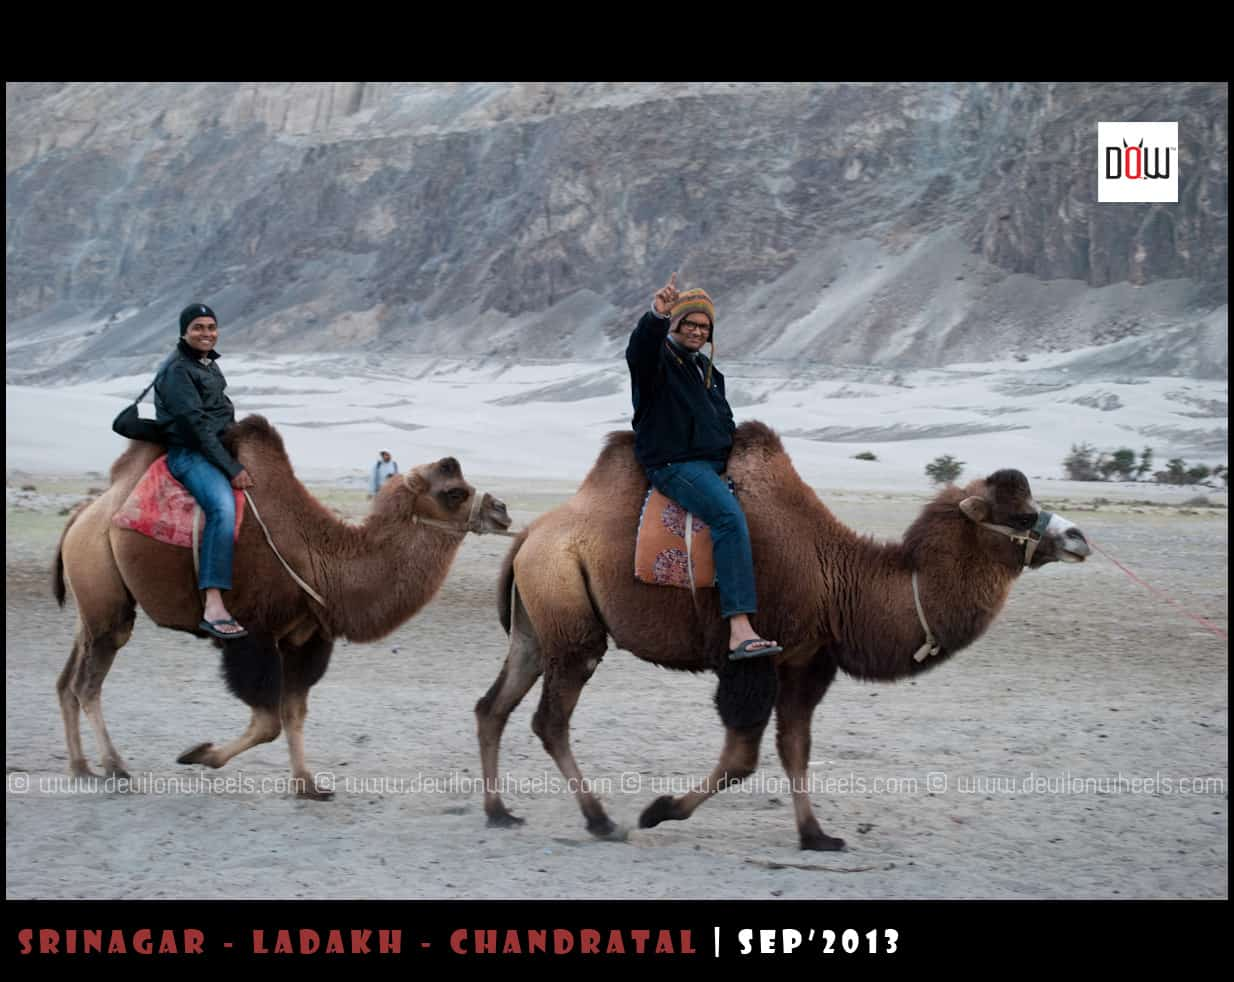 DoW Gang Completing their Double Humped Camel Safari at Hunder